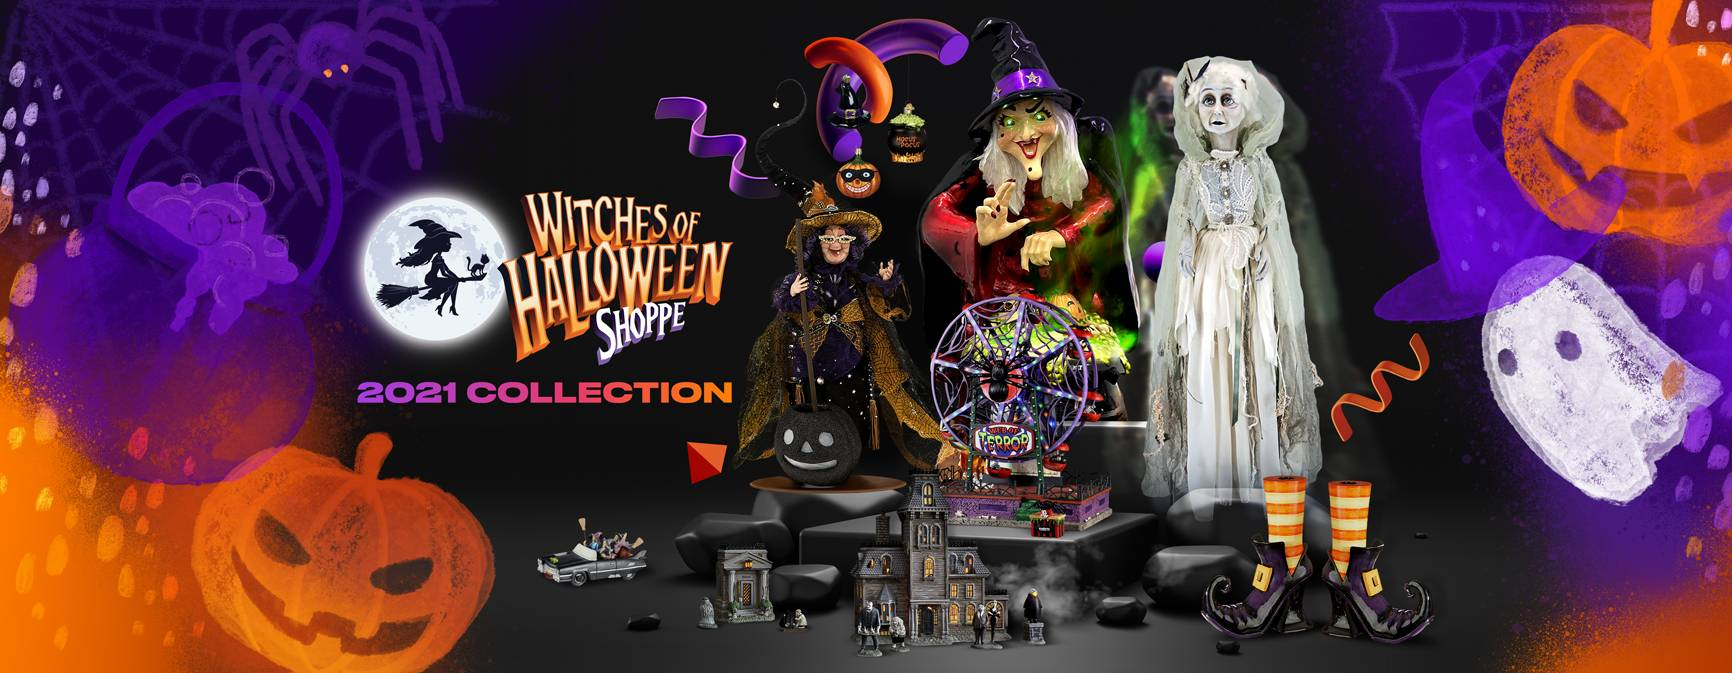 Launching our 2021 Halloween Colletion